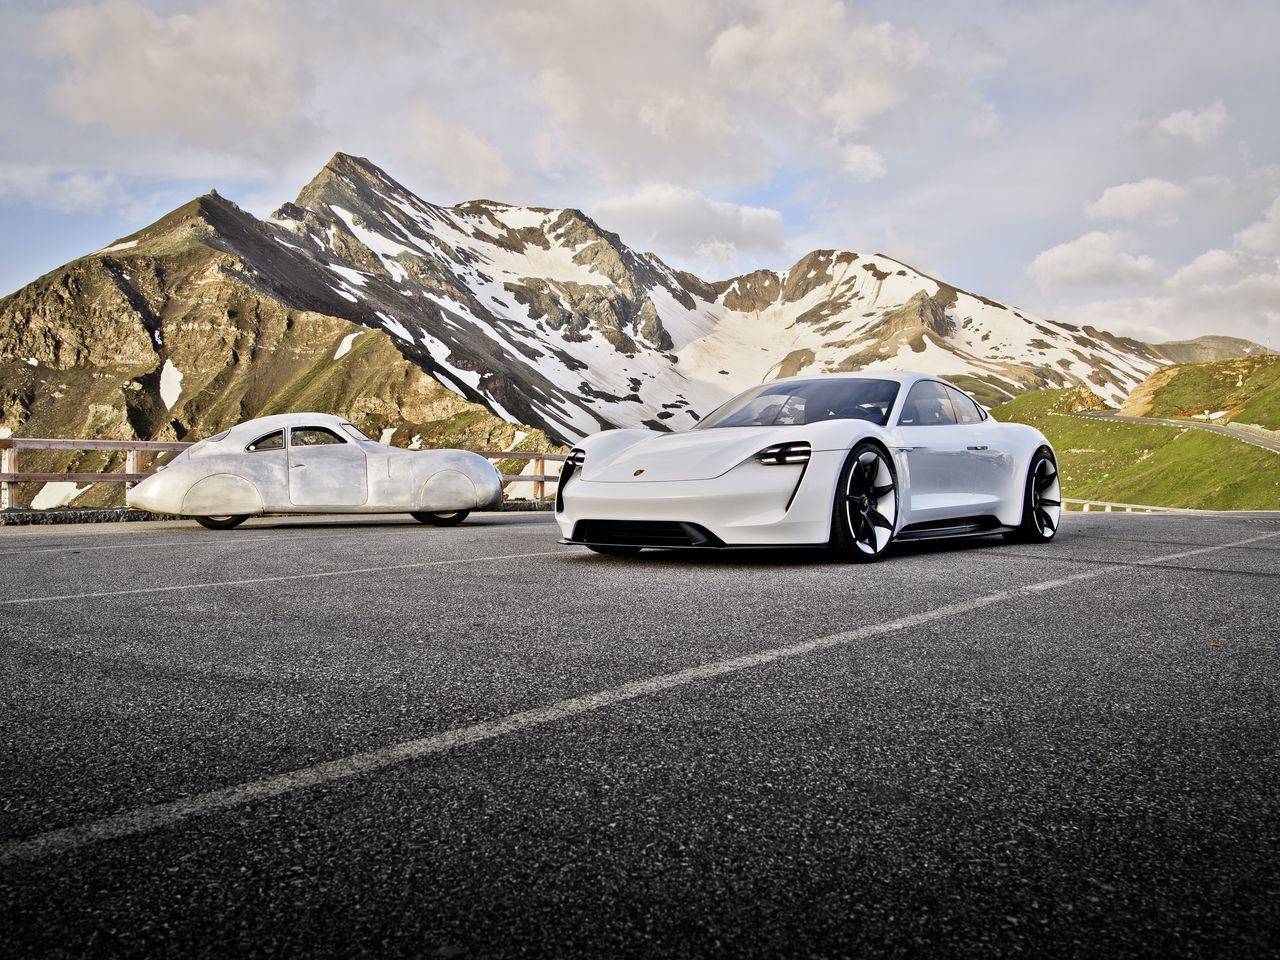 "Bogner brought together the entire history of Porsche on Austria's highest mountain: From the Porsche Type 64 designed by Ferdinand Porsche in 1939 (often referred to as the ""Berlin-Rome car"") to the Mission E concept car."